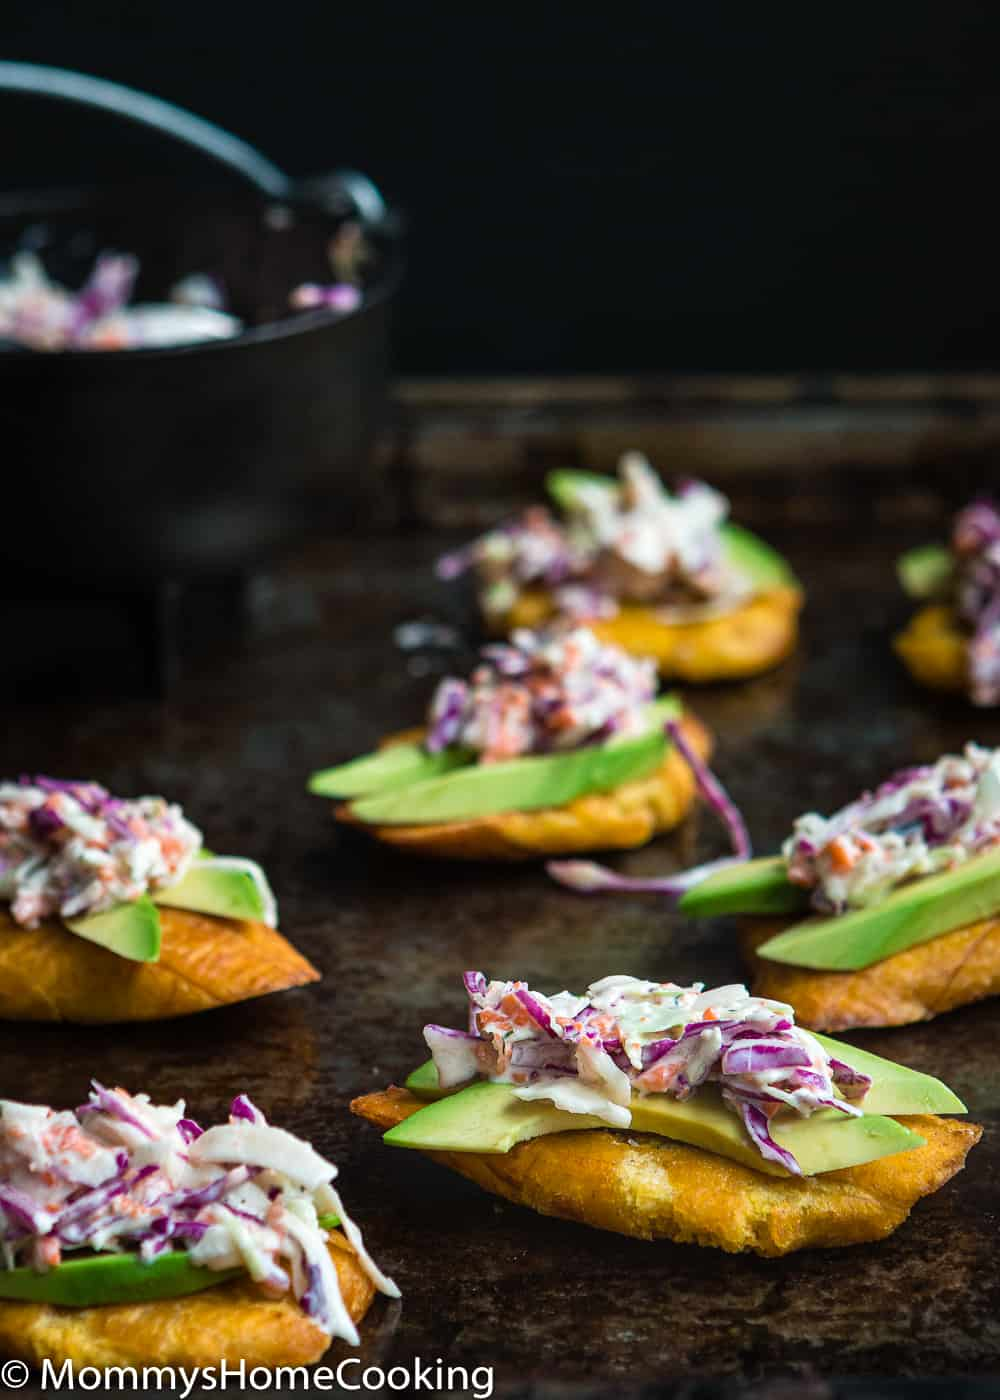 Tostones with sliced avocado and coleslaw salad